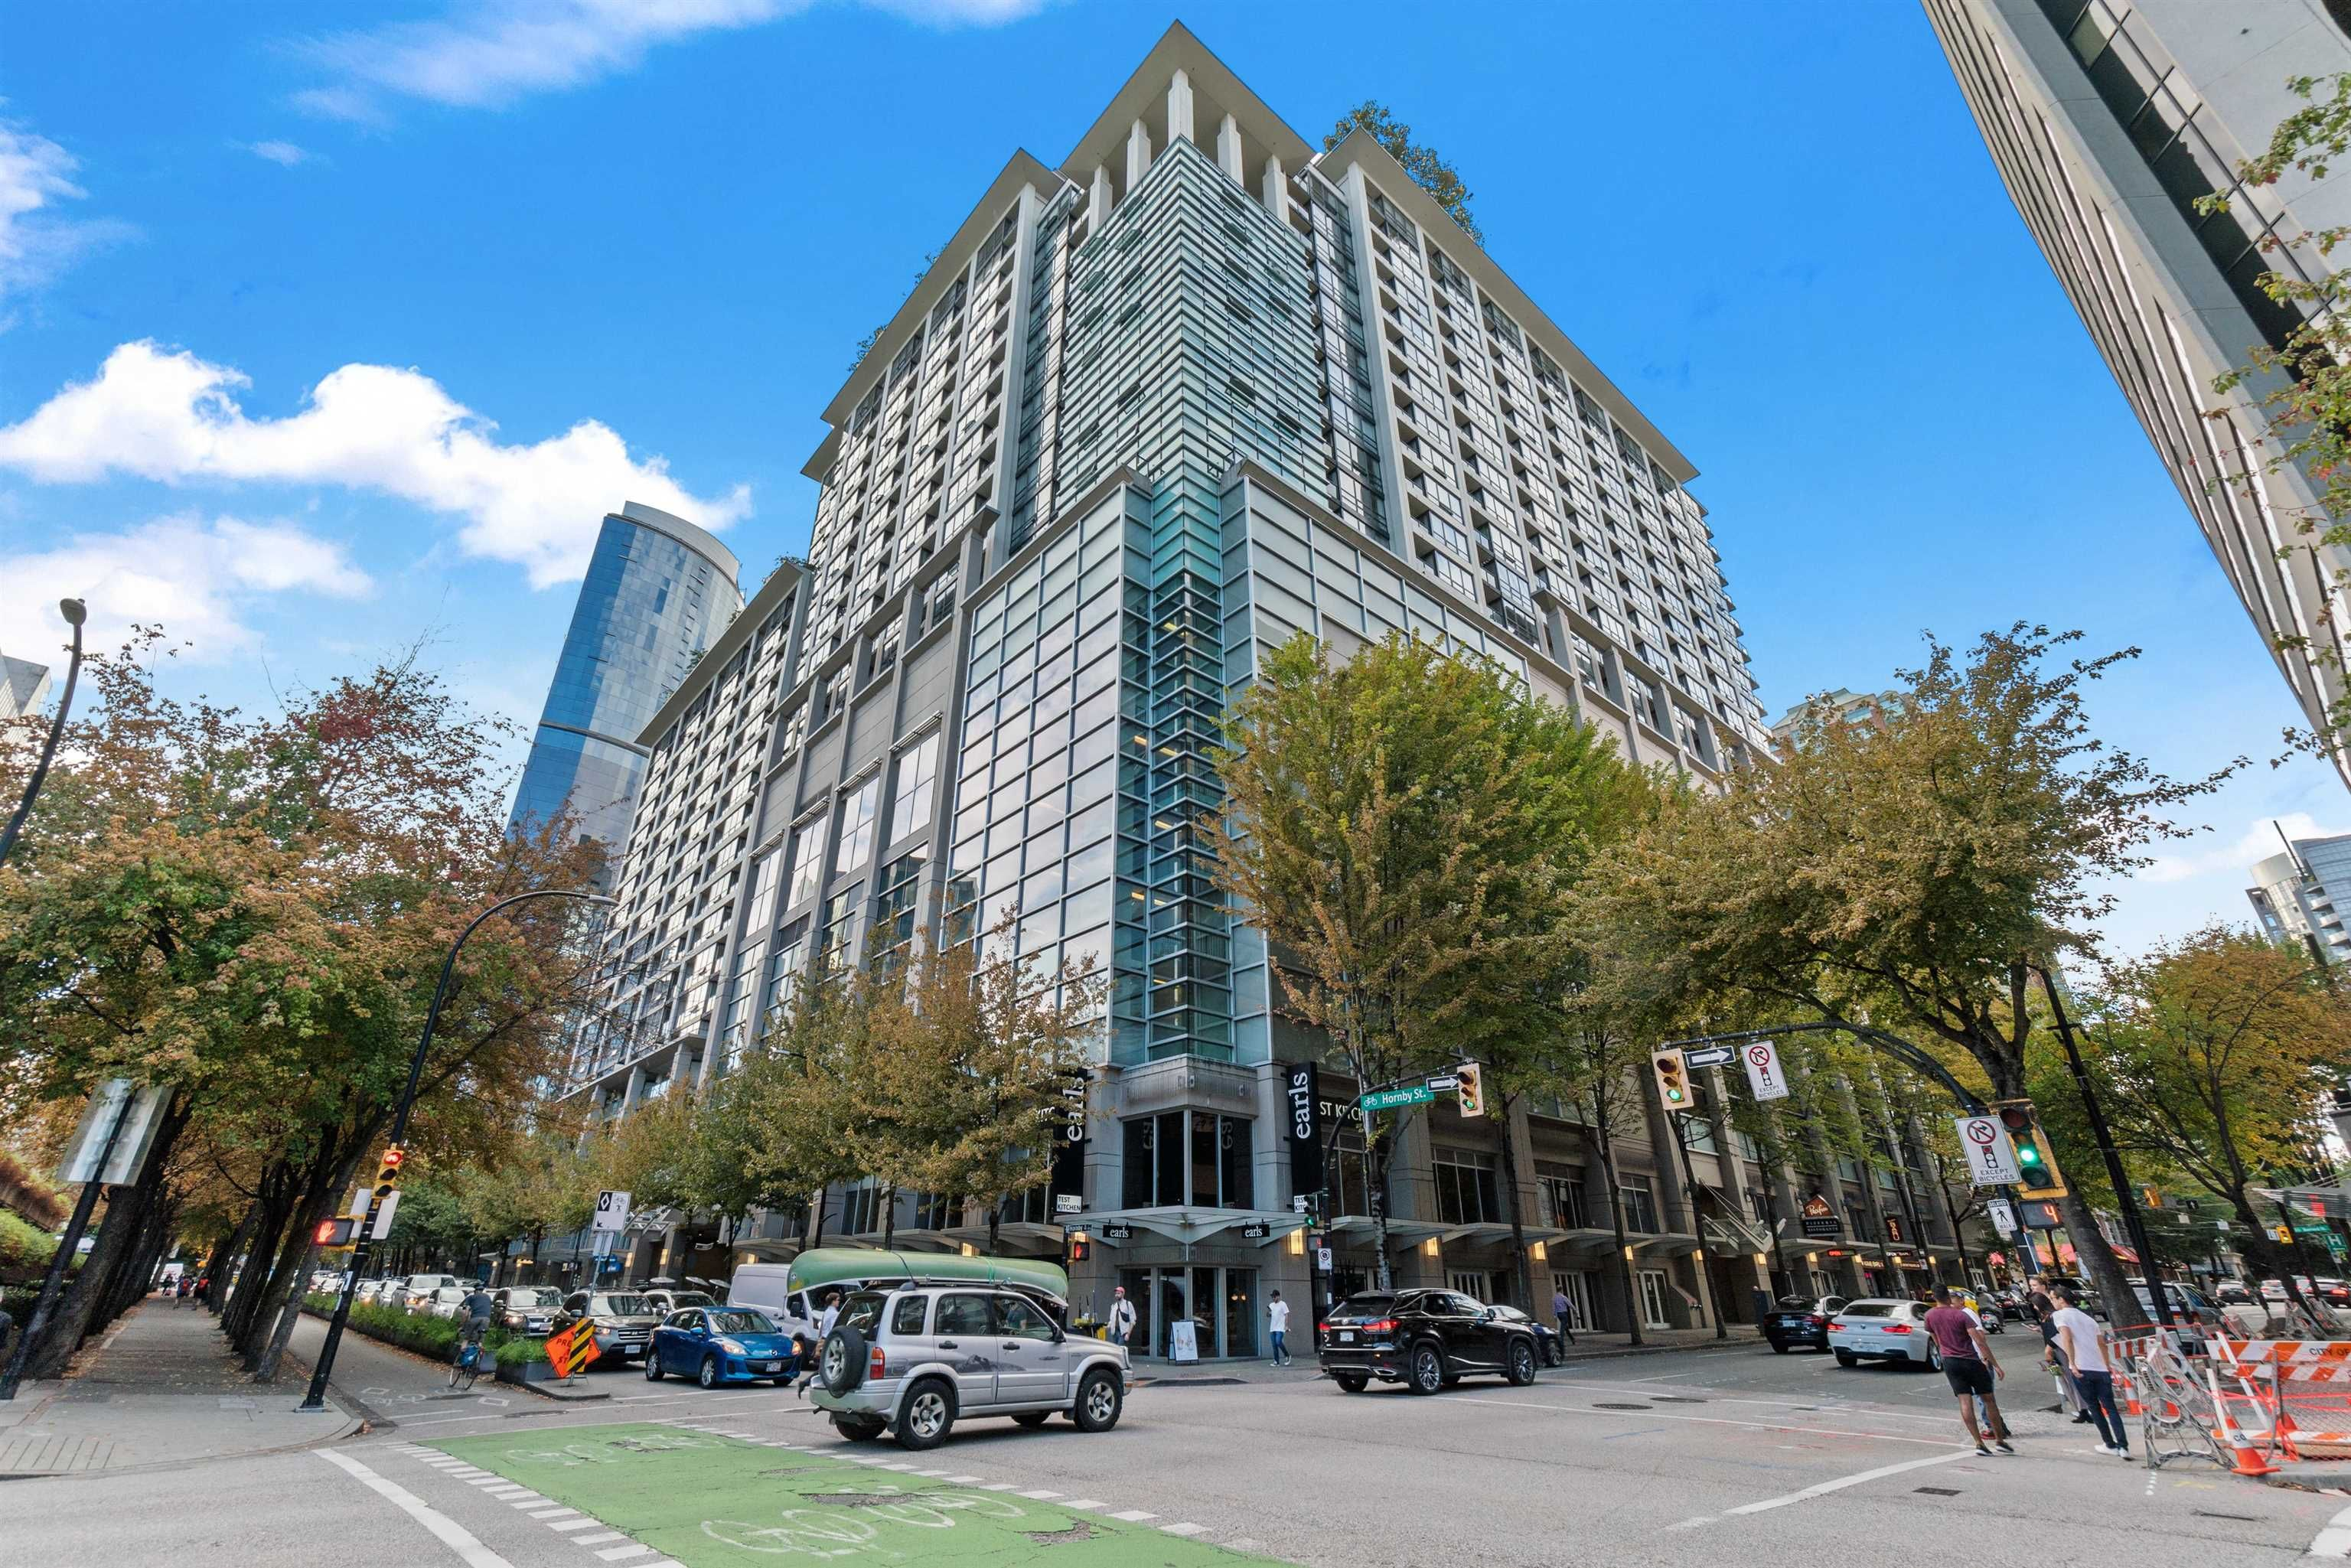 """Main Photo: 1526 938 SMITHE Street in Vancouver: Downtown VW Condo for sale in """"Electric Avenue"""" (Vancouver West)  : MLS®# R2617511"""